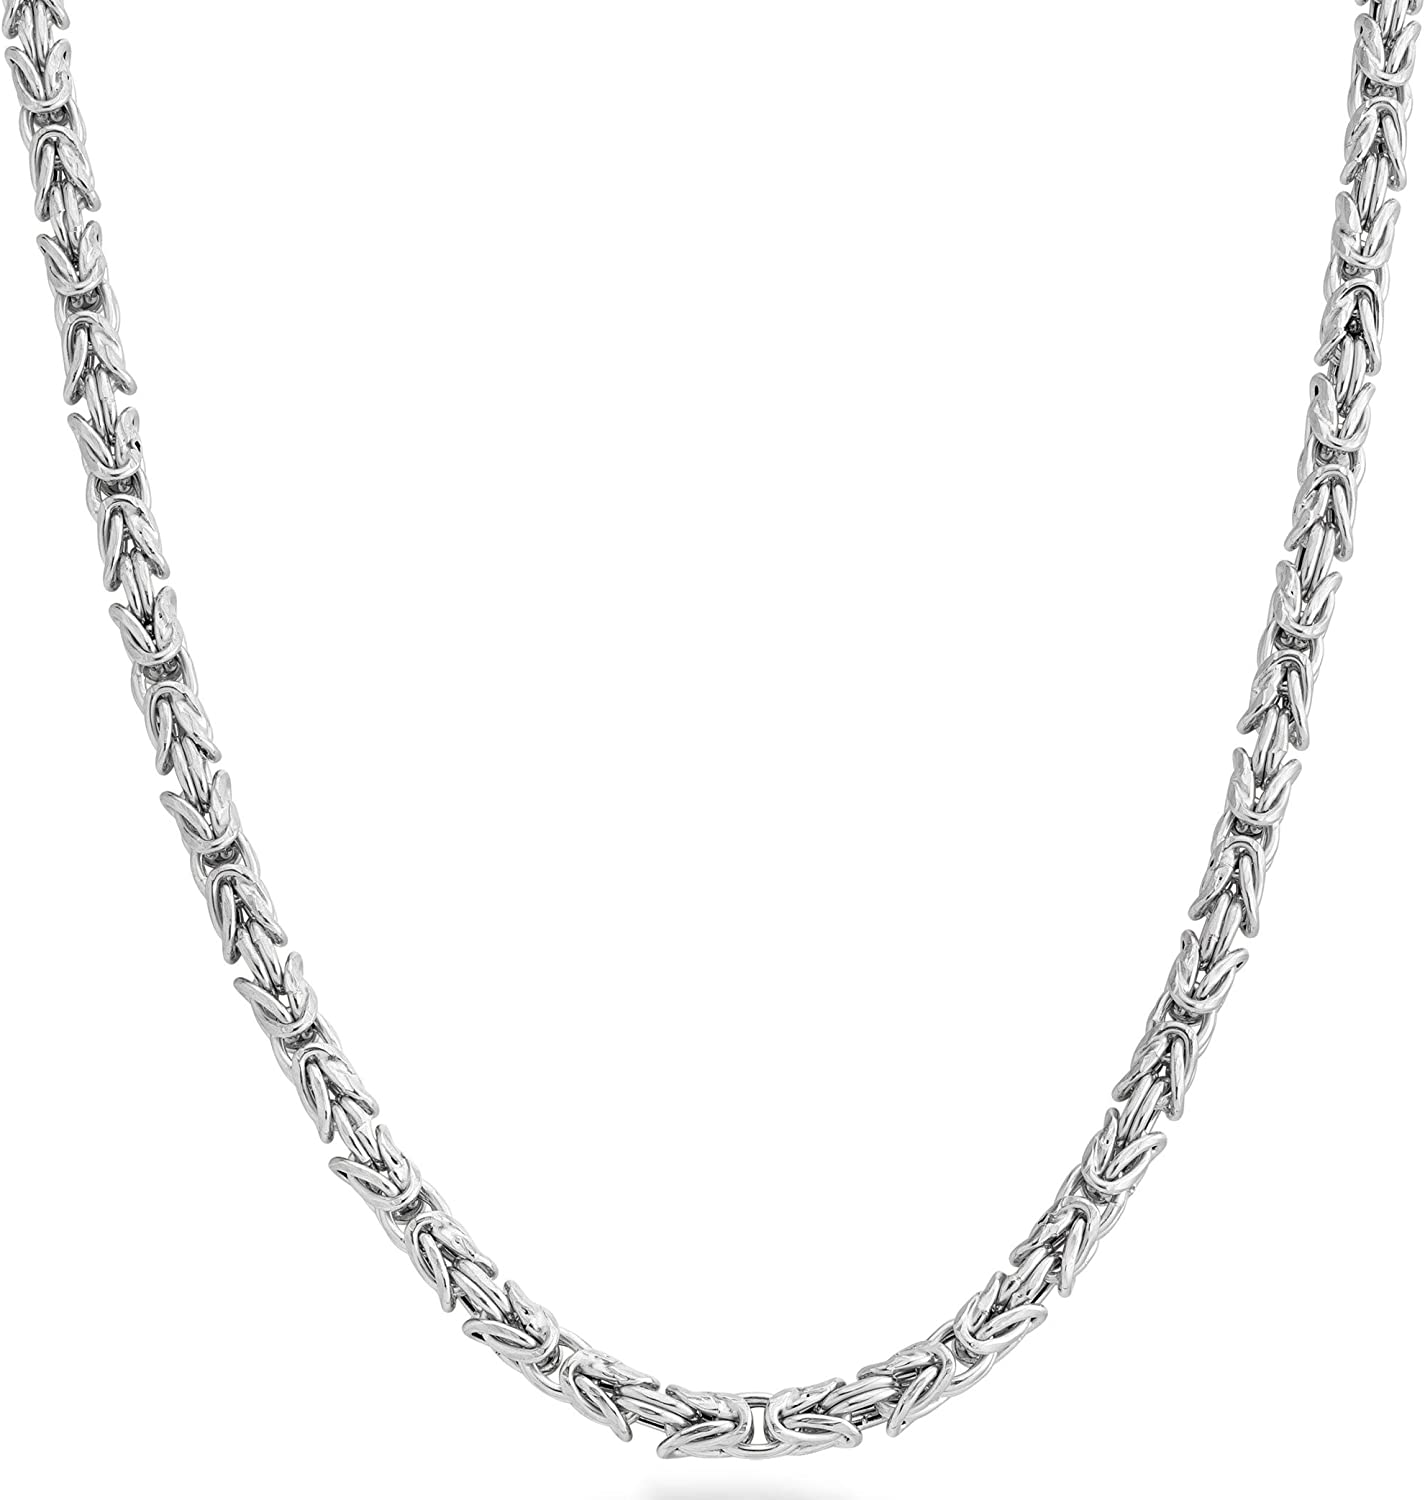 Miabella 925 Sterling Silver Italian 4.5mm Solid Round Byzantine Link Chain Necklace for Women Men, 18, 20, 22, 24, 26 Inch 925 Handmade in Italy